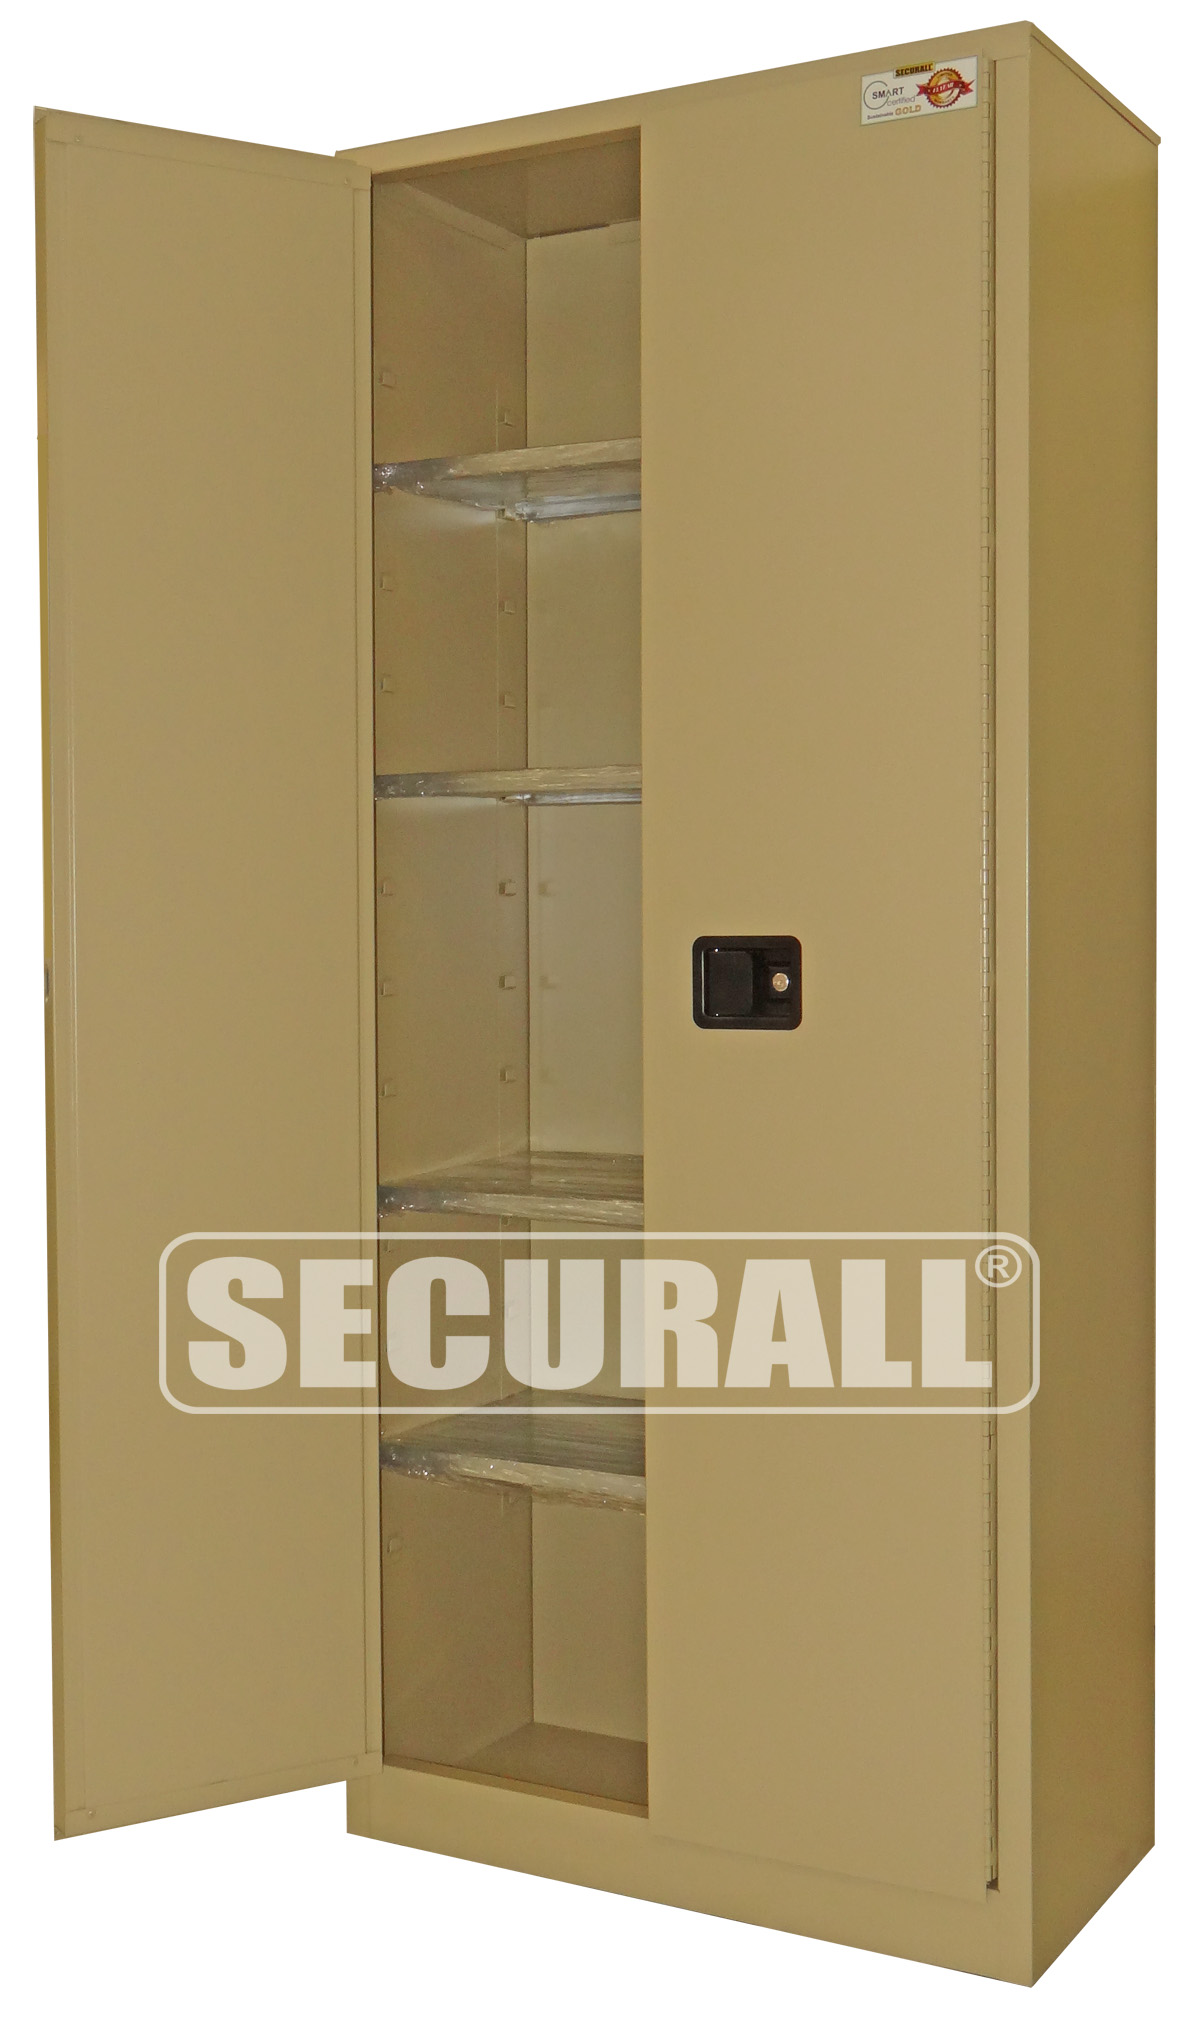 industrial storage cabinet with doors. SS184 - INDUSTRIAL STORAGE CABINET Industrial Storage Cabinet With Doors S